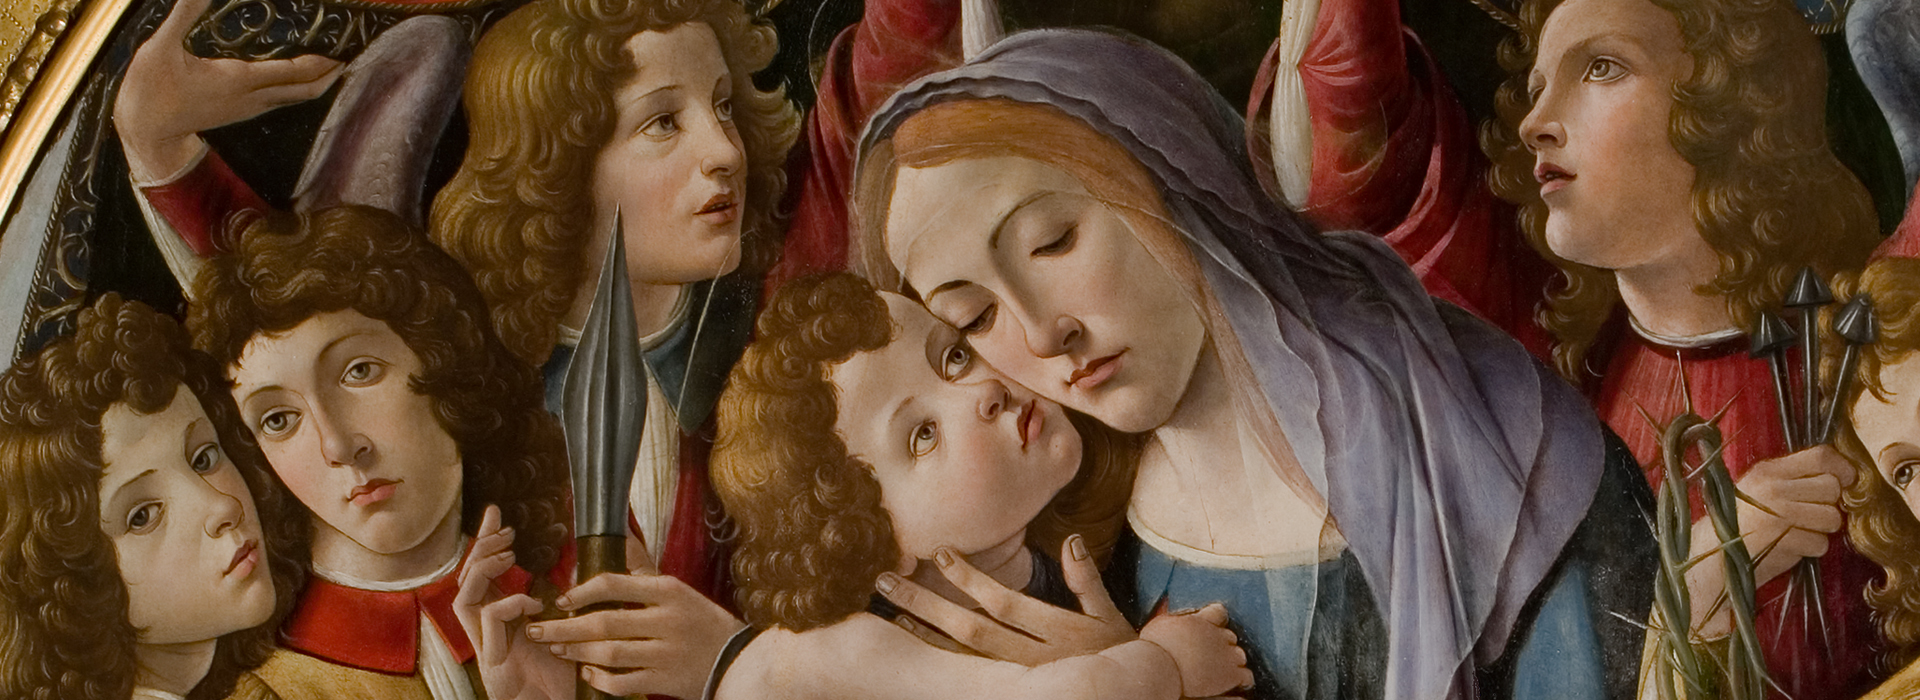 BOTTICELLI: MADONNA AND CHILD WITH SIX ANGELS